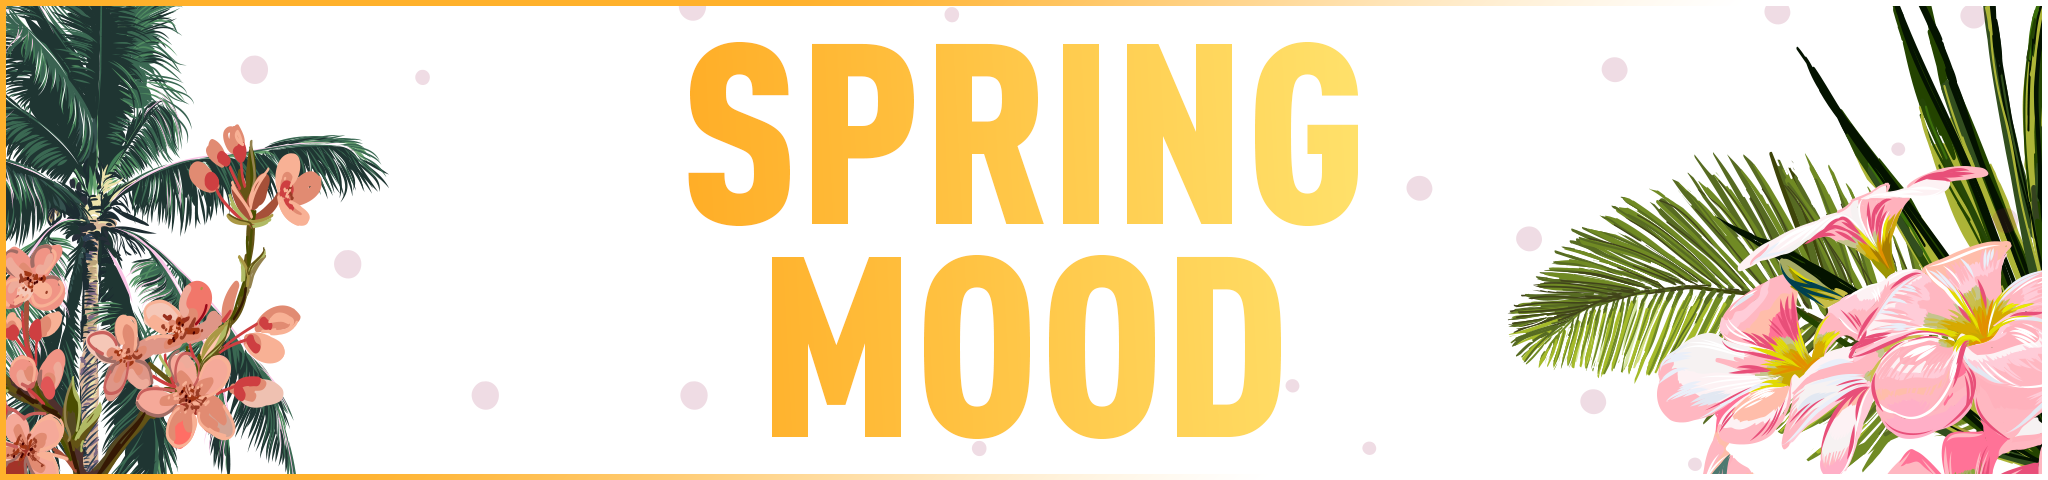 Spring Mood - Doodle watches for the spring